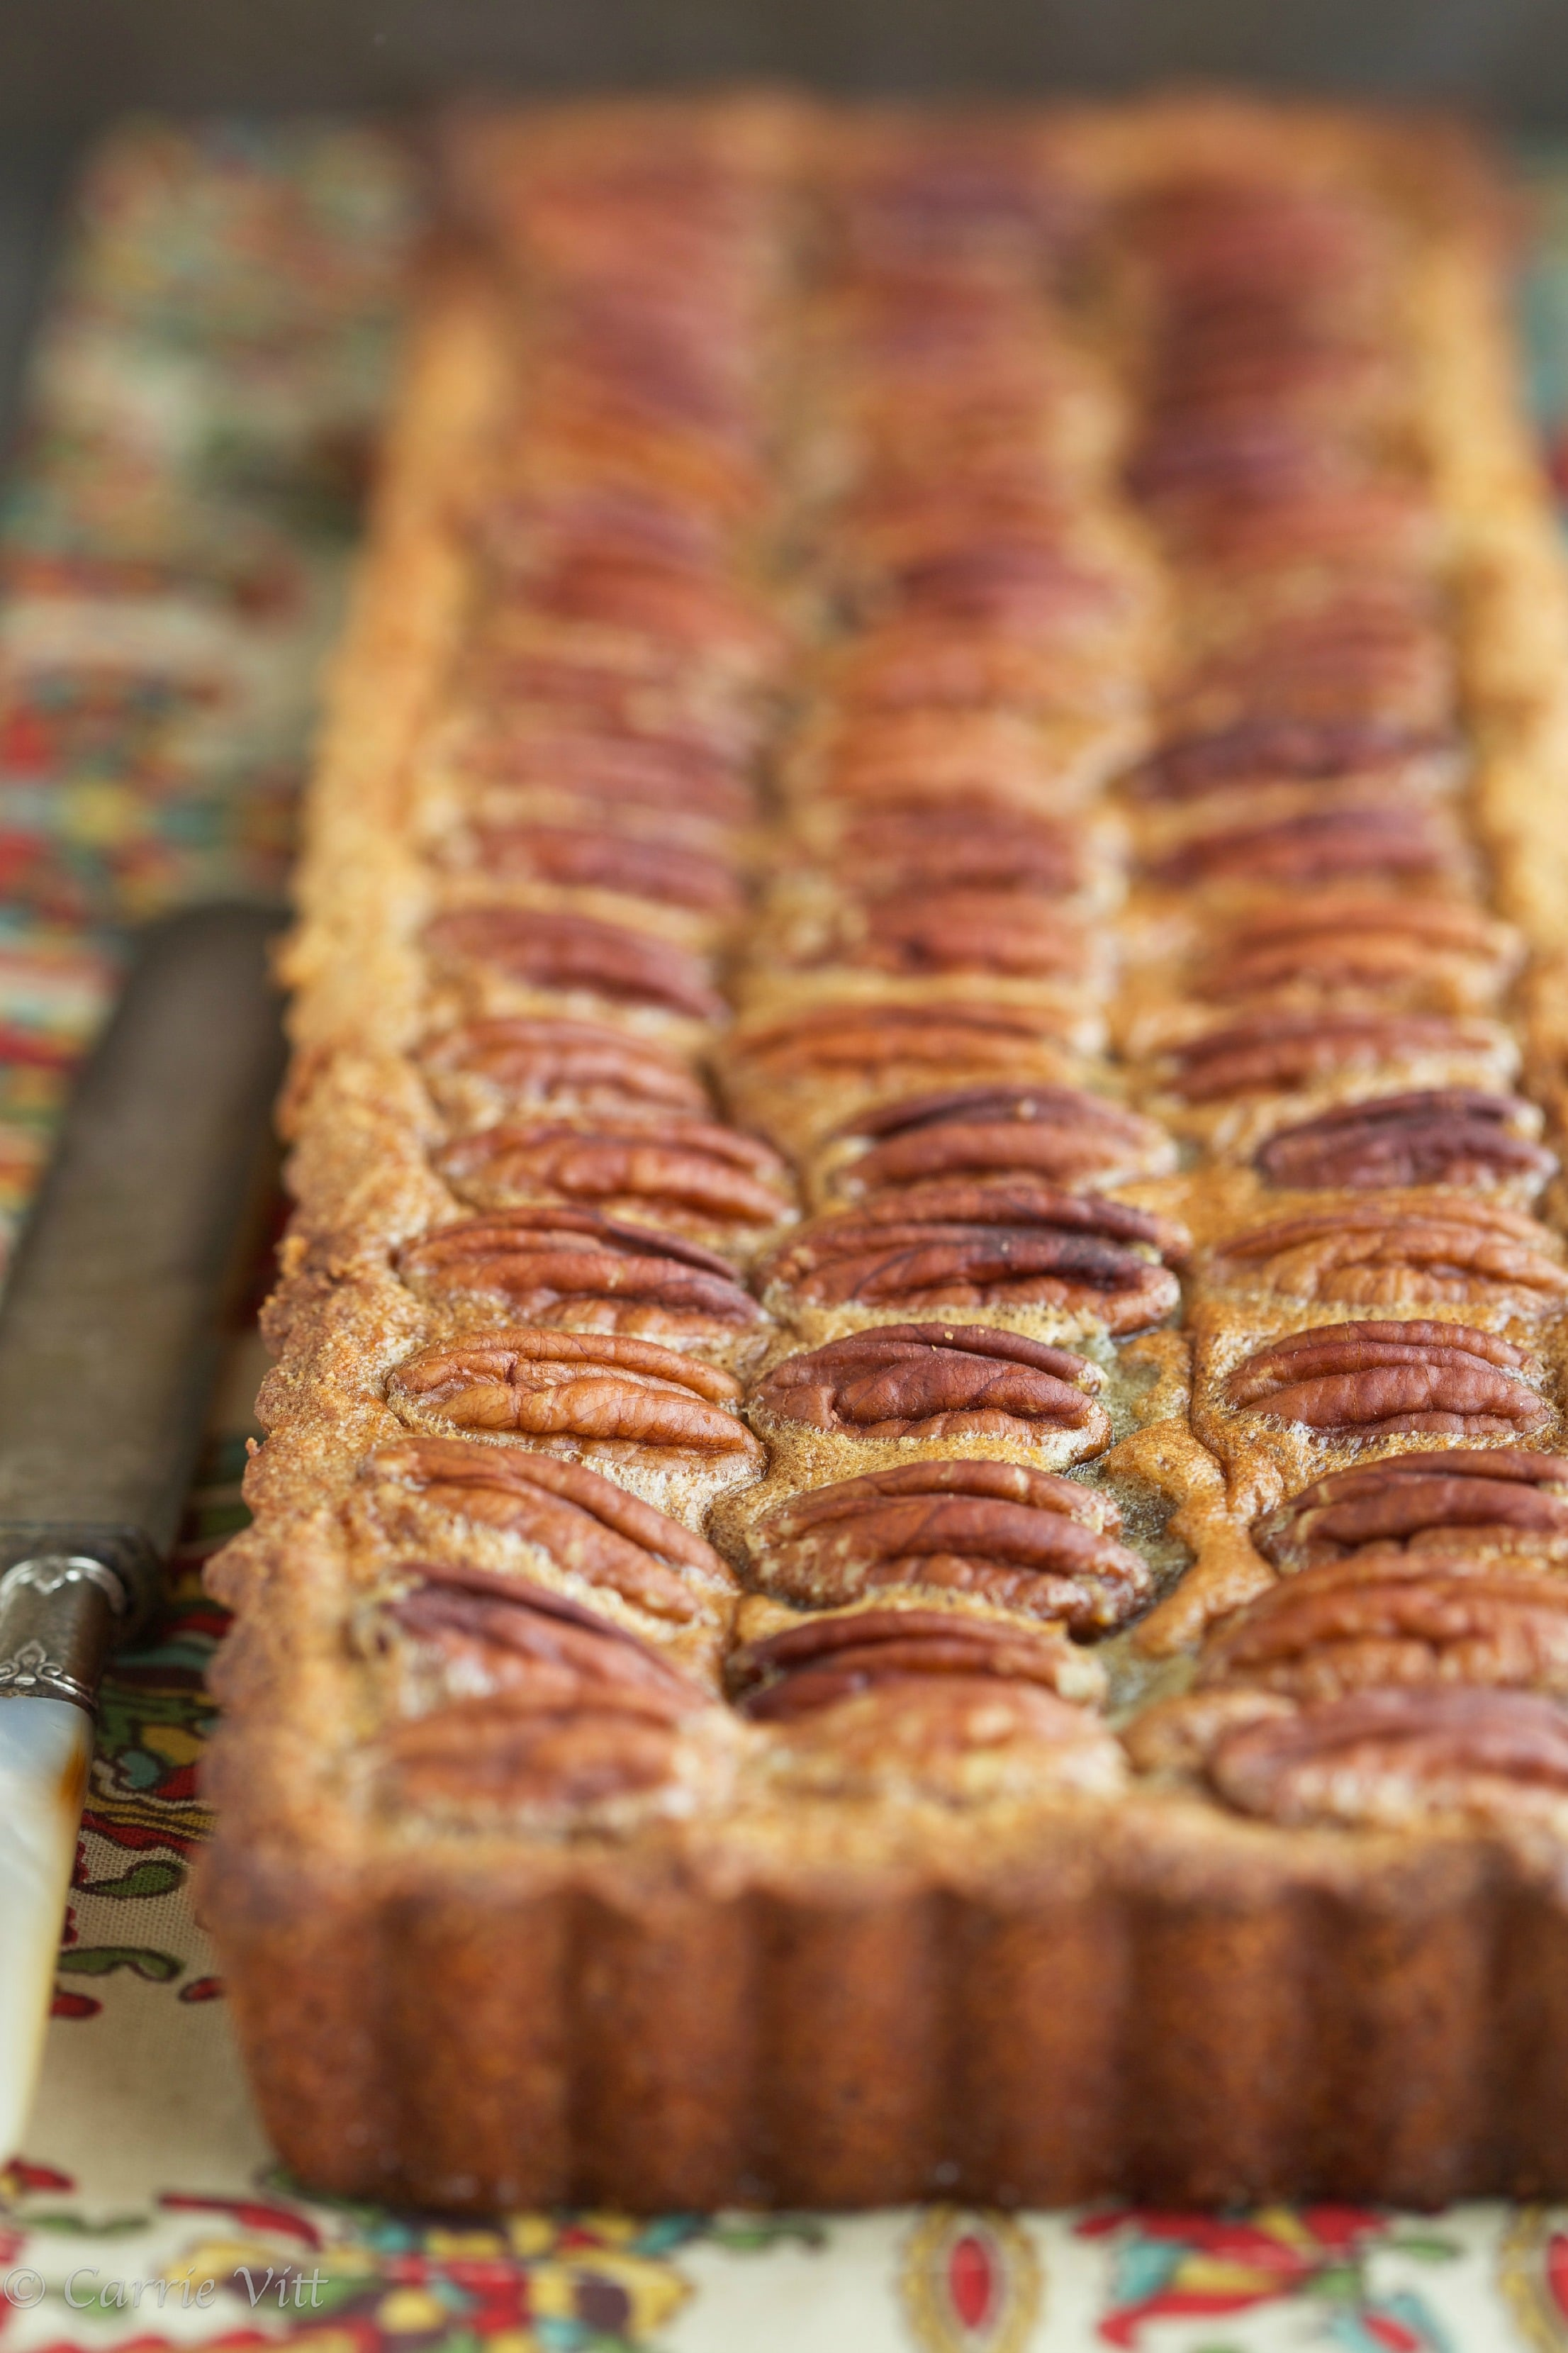 Pecan Pie without Corn Syrup (Grain Free, Paleo, Primal, Gluten Free)